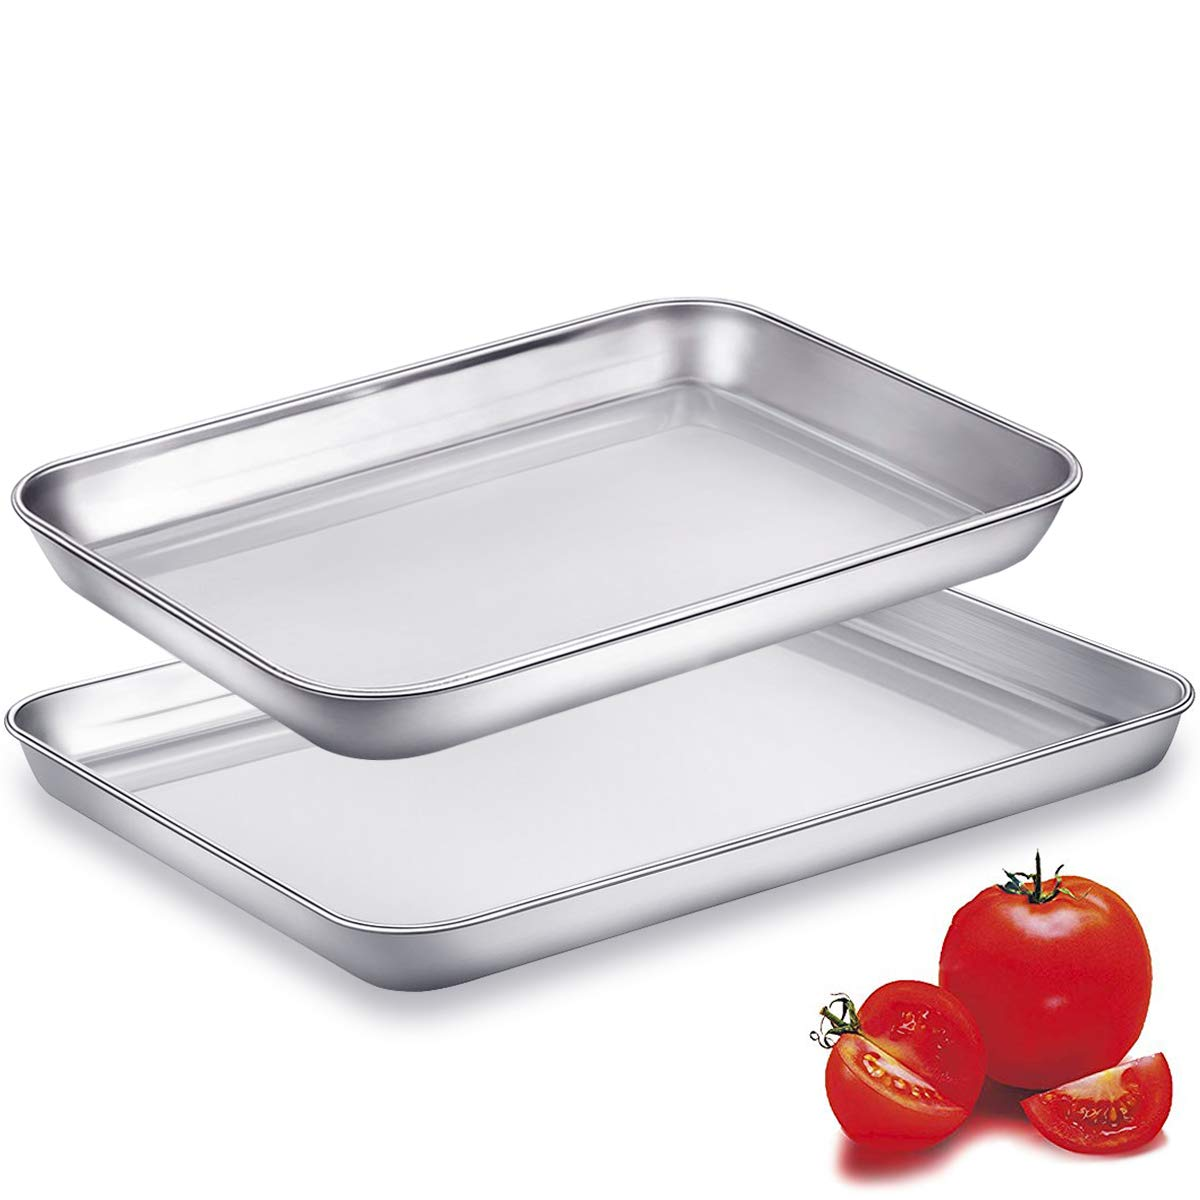 Cookie Sheets Toaster Oven Pans for Baking, Small Stainless Steel Metal Pan Tray, Eaninno Rectangle Sturdy & Heavy Bakeware Sheet Trays, 10 & 9 inch, 2 Piece/Set